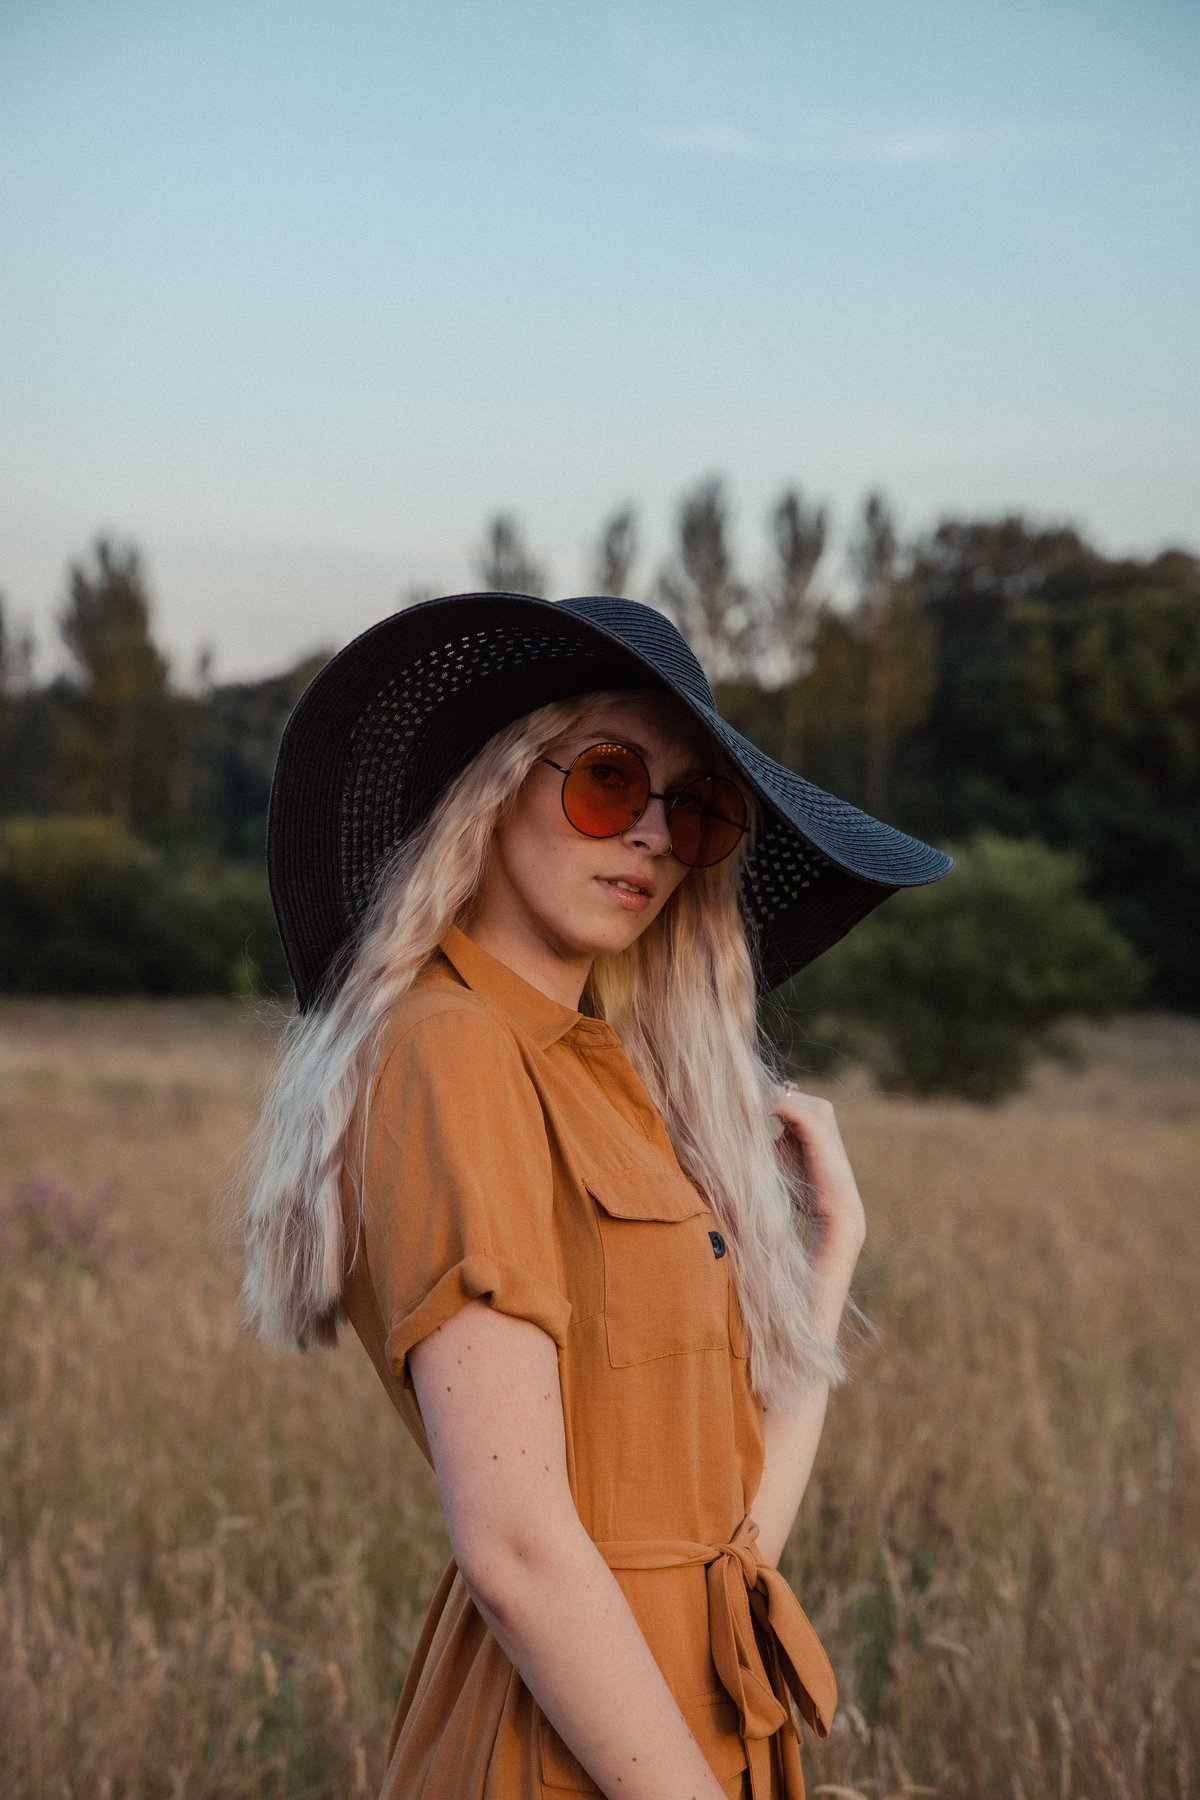 Amber stood  in the grass at golden hour, wearing orange sunglasses and a black straw hat